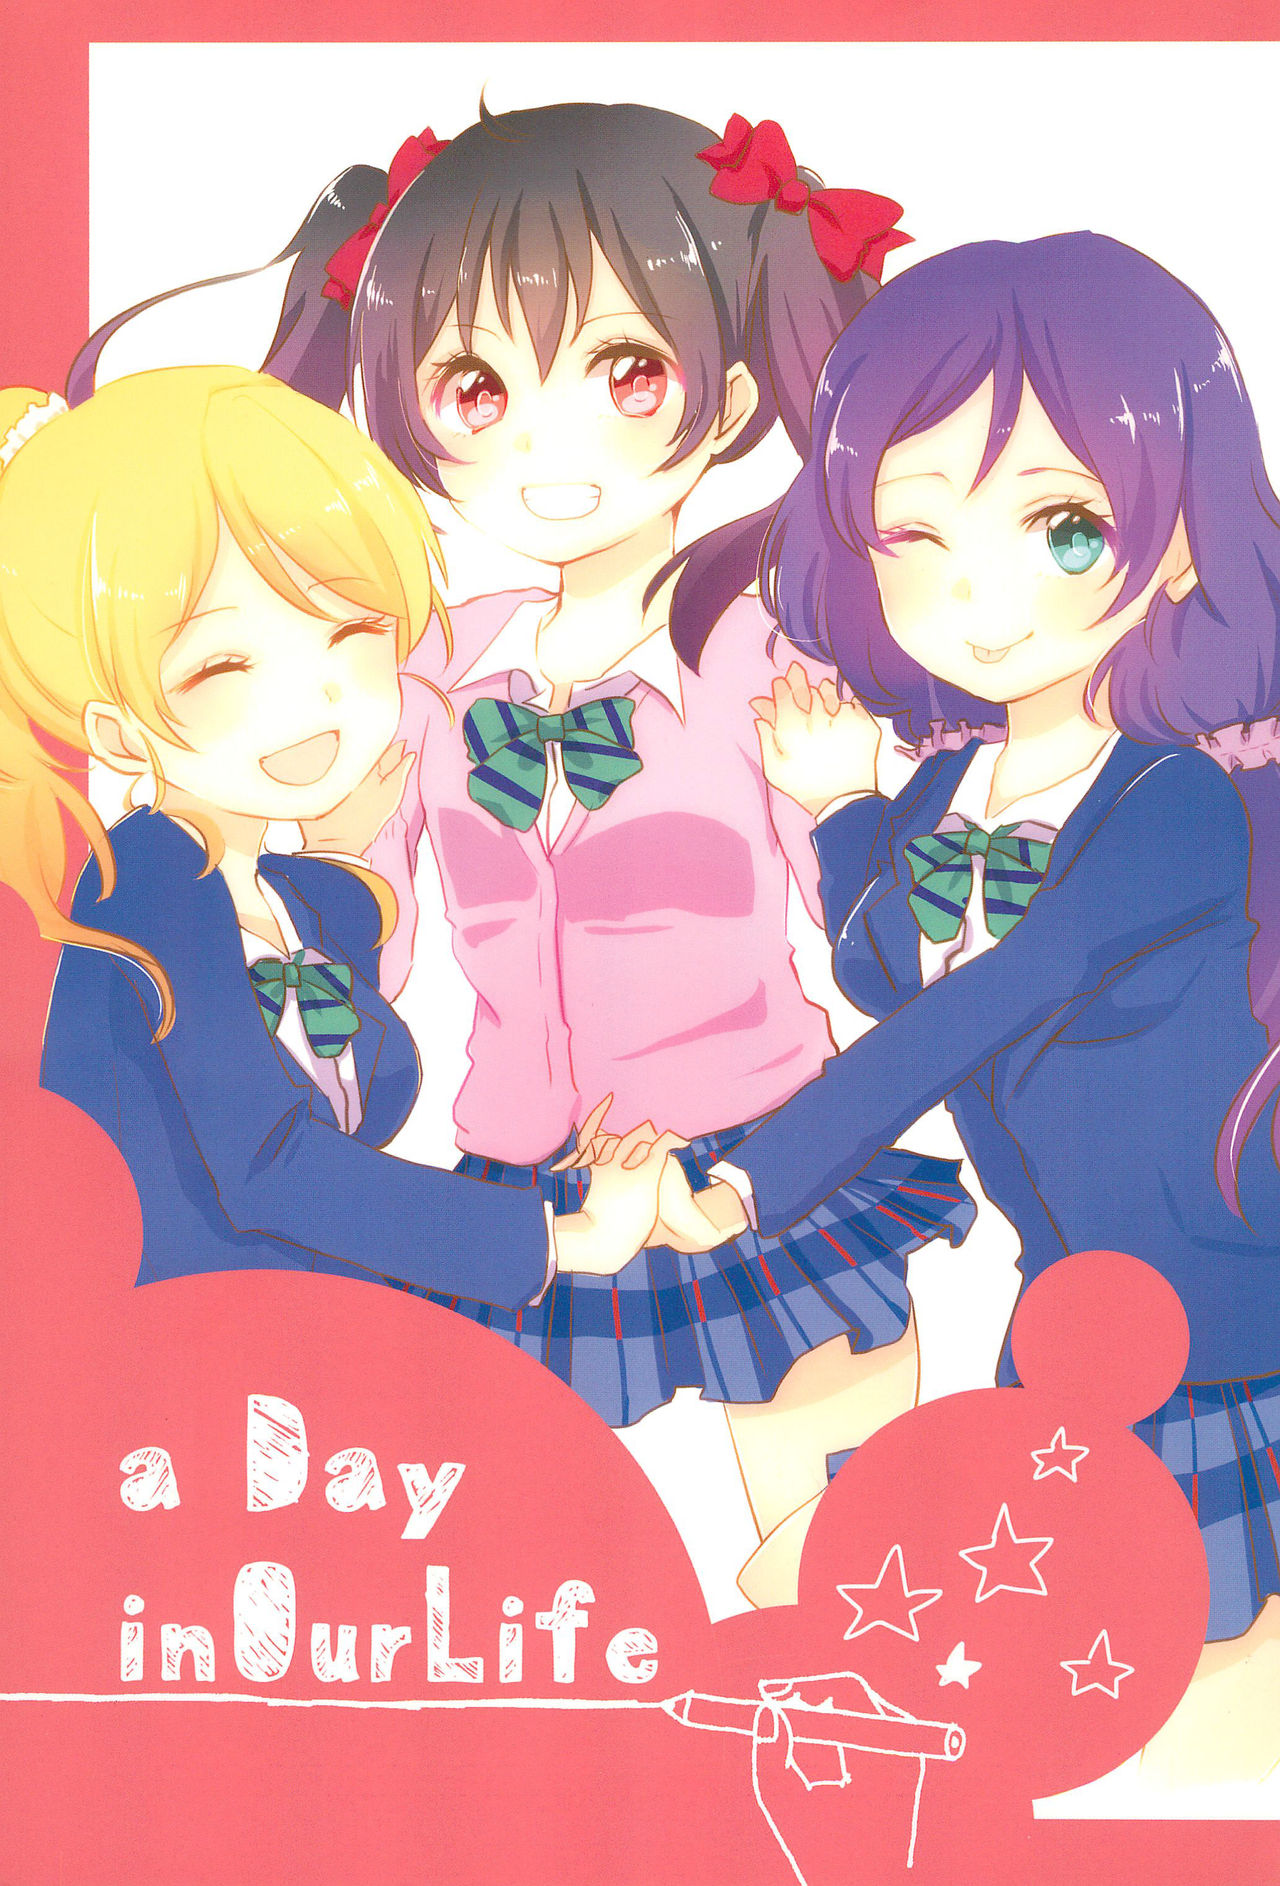 Love Live! - a Day in Our Life (Doujinshi)